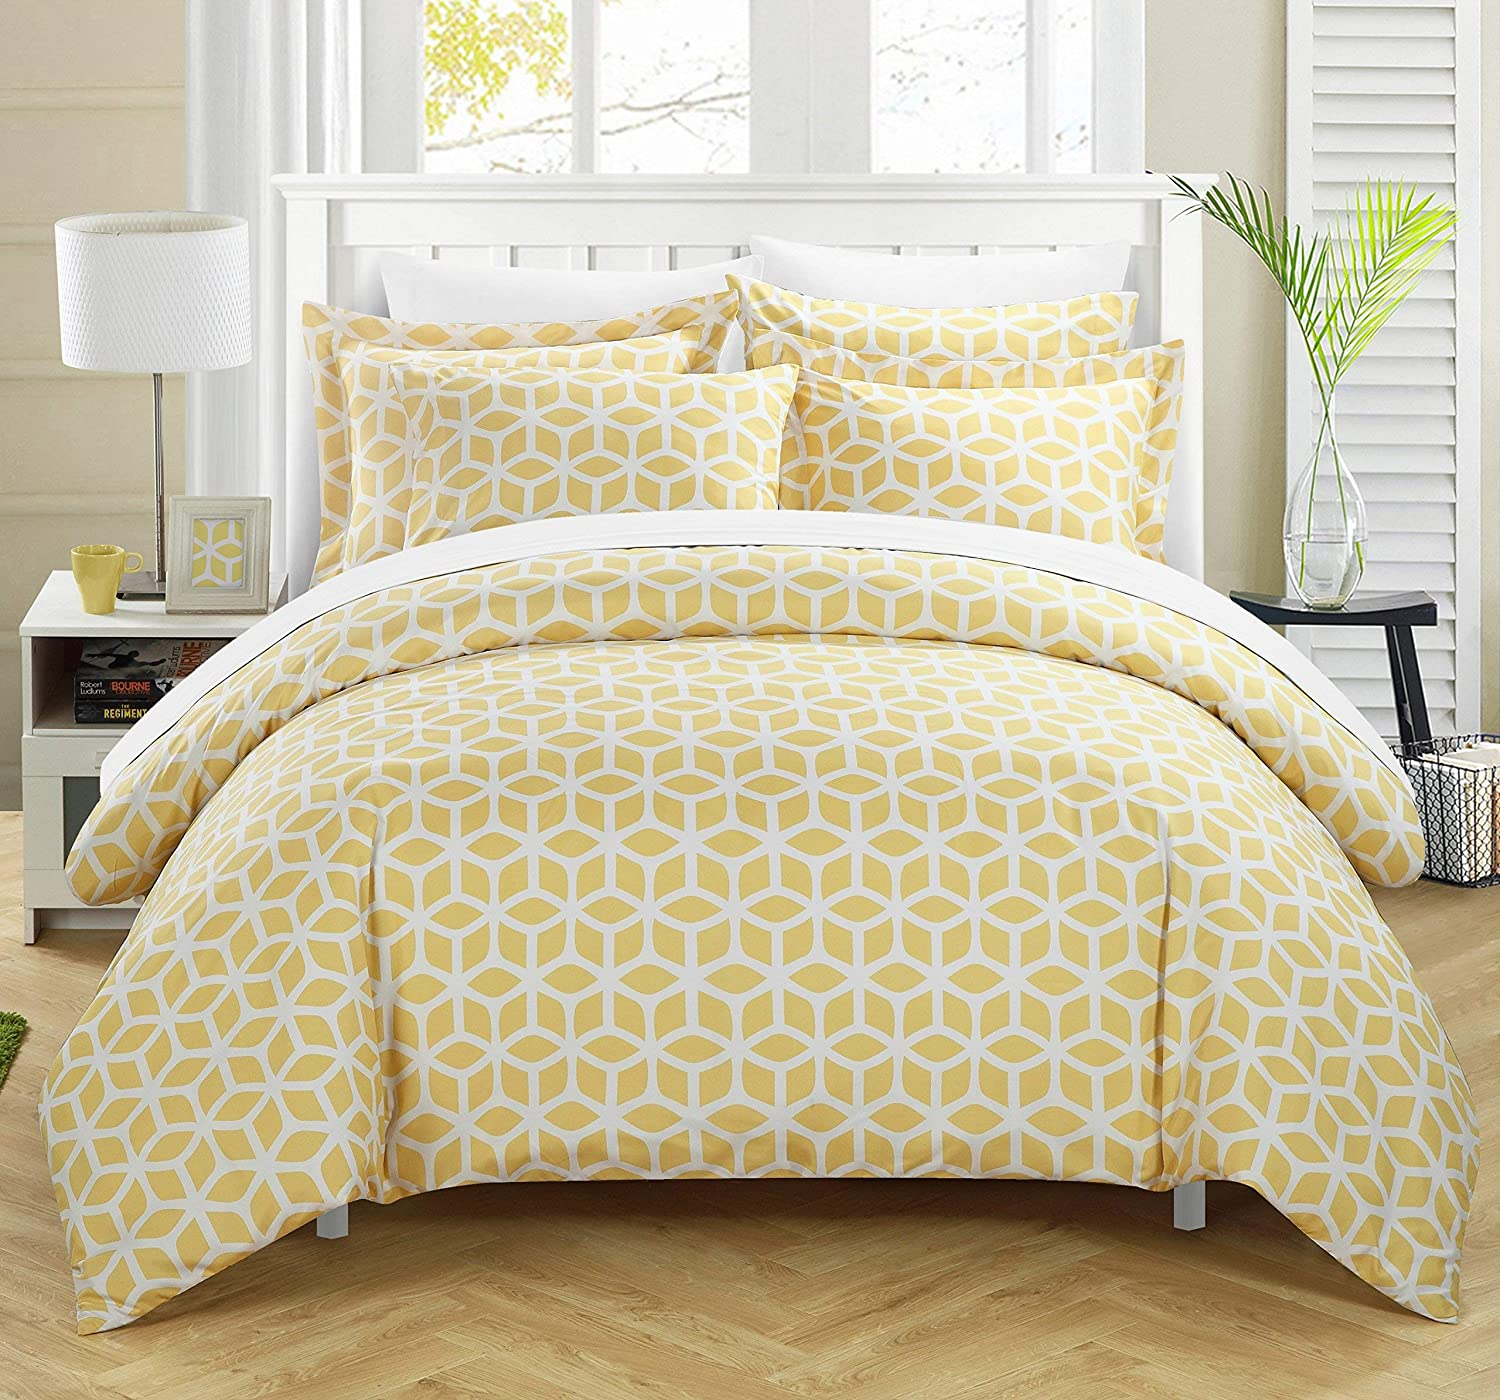 Chic Home 3 Piece Elizabeth Geometric Diamond Printed Reversible Duvet Cover Set, Queen, Yellow